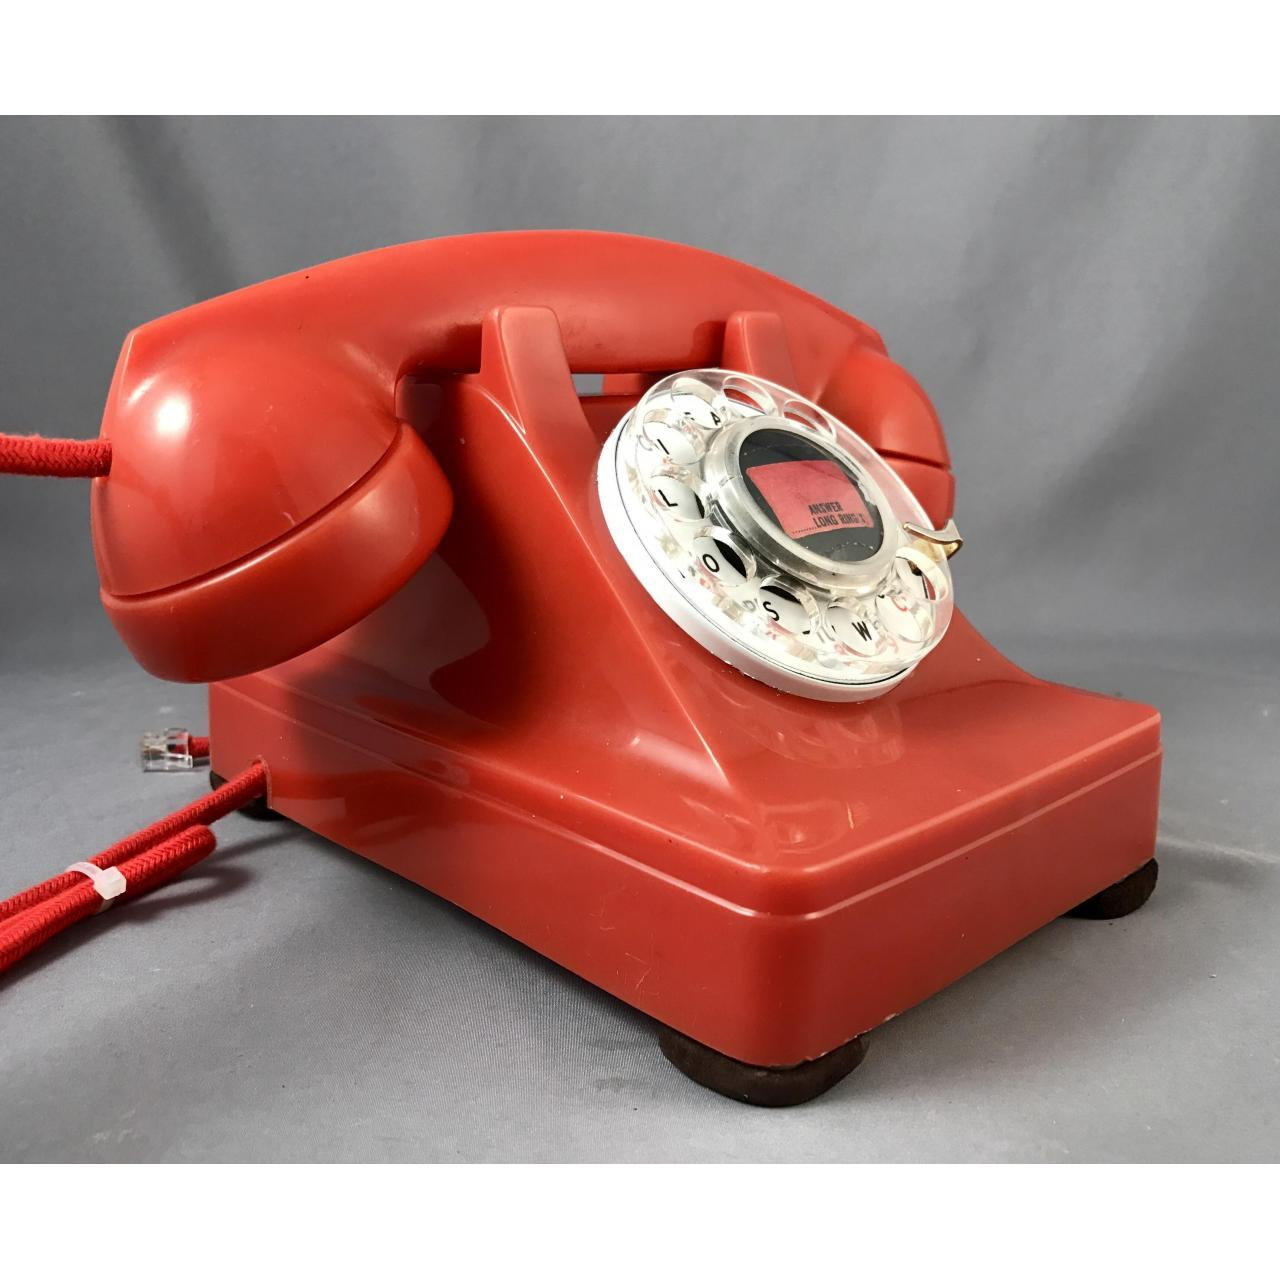 Quality 302 - Red - Fully Refurbished Antique Phones for sale